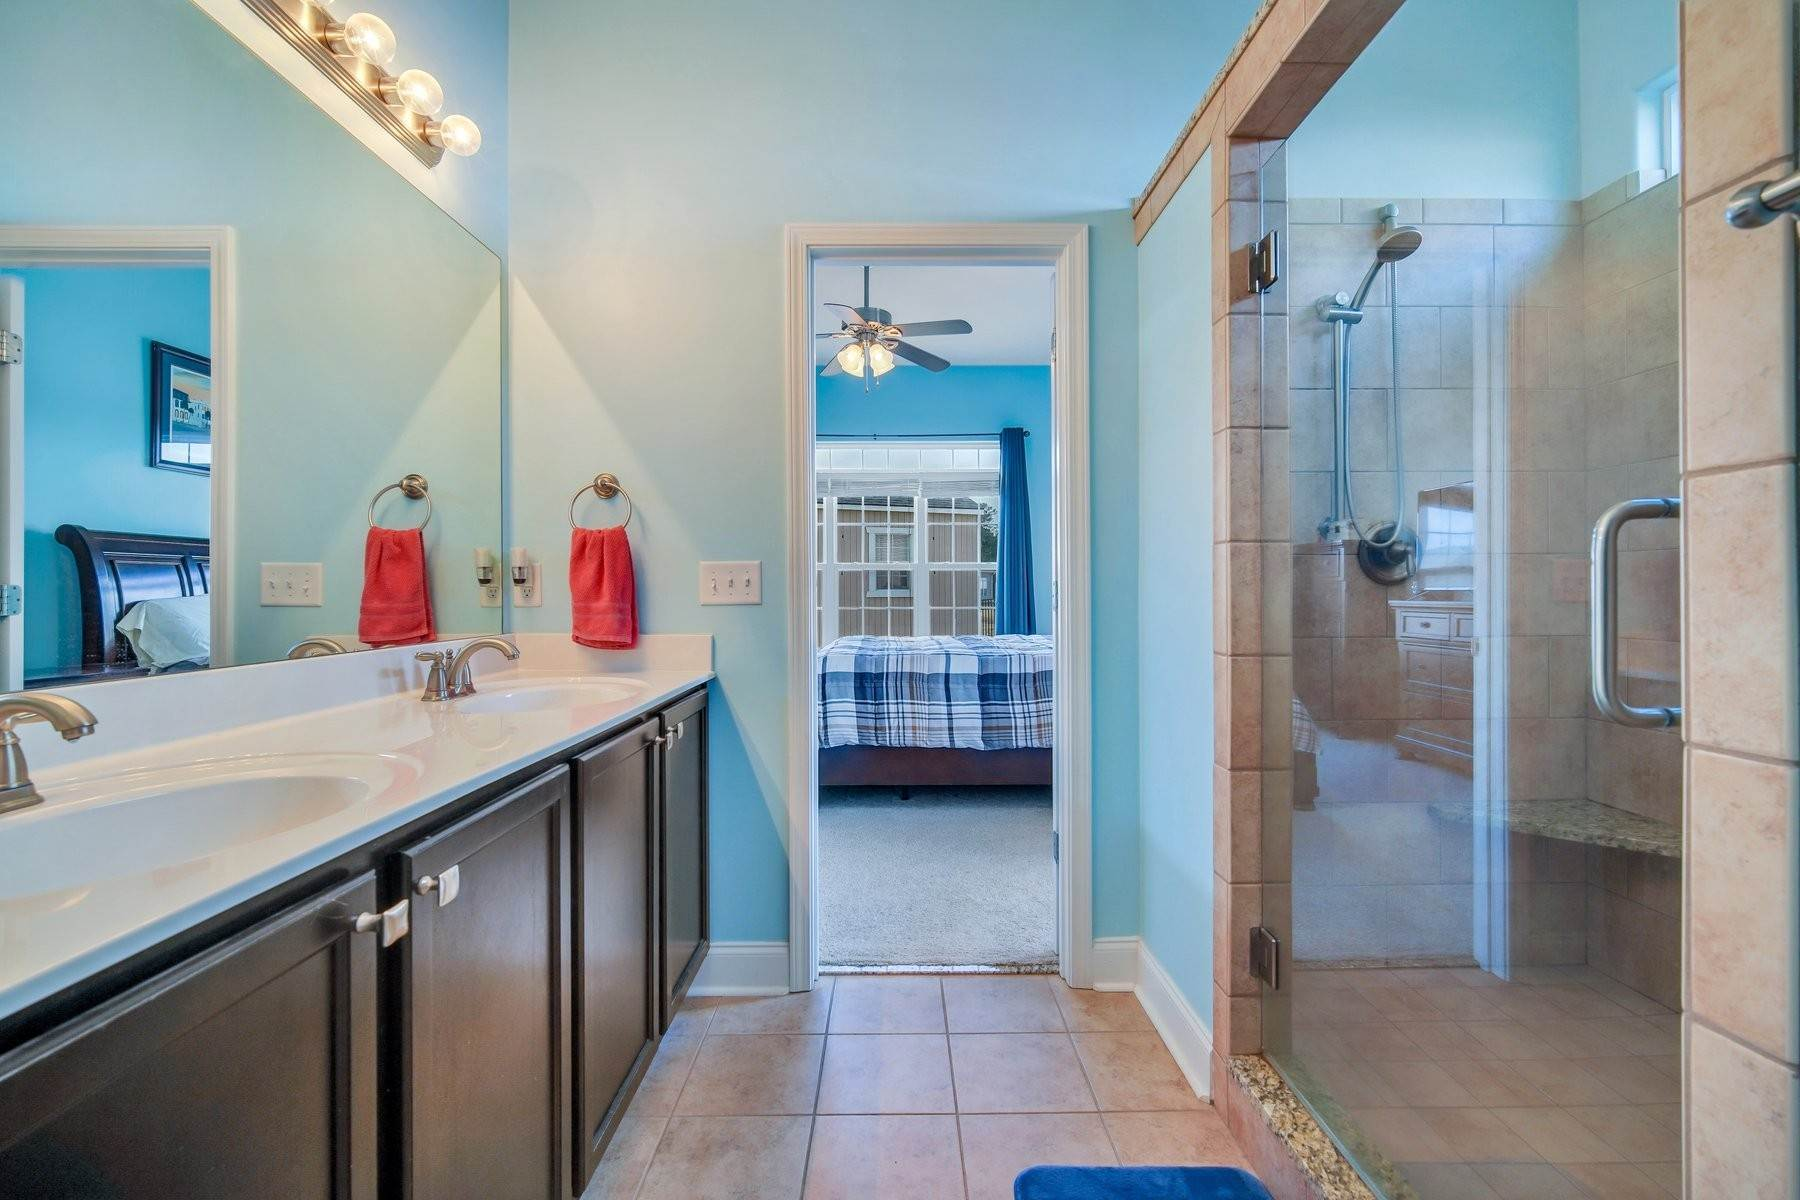 21. Single Family Homes for Sale at May Model in Hearthstone Lake 749 Hearthstone Drive Ridgeland, South Carolina 29936 United States